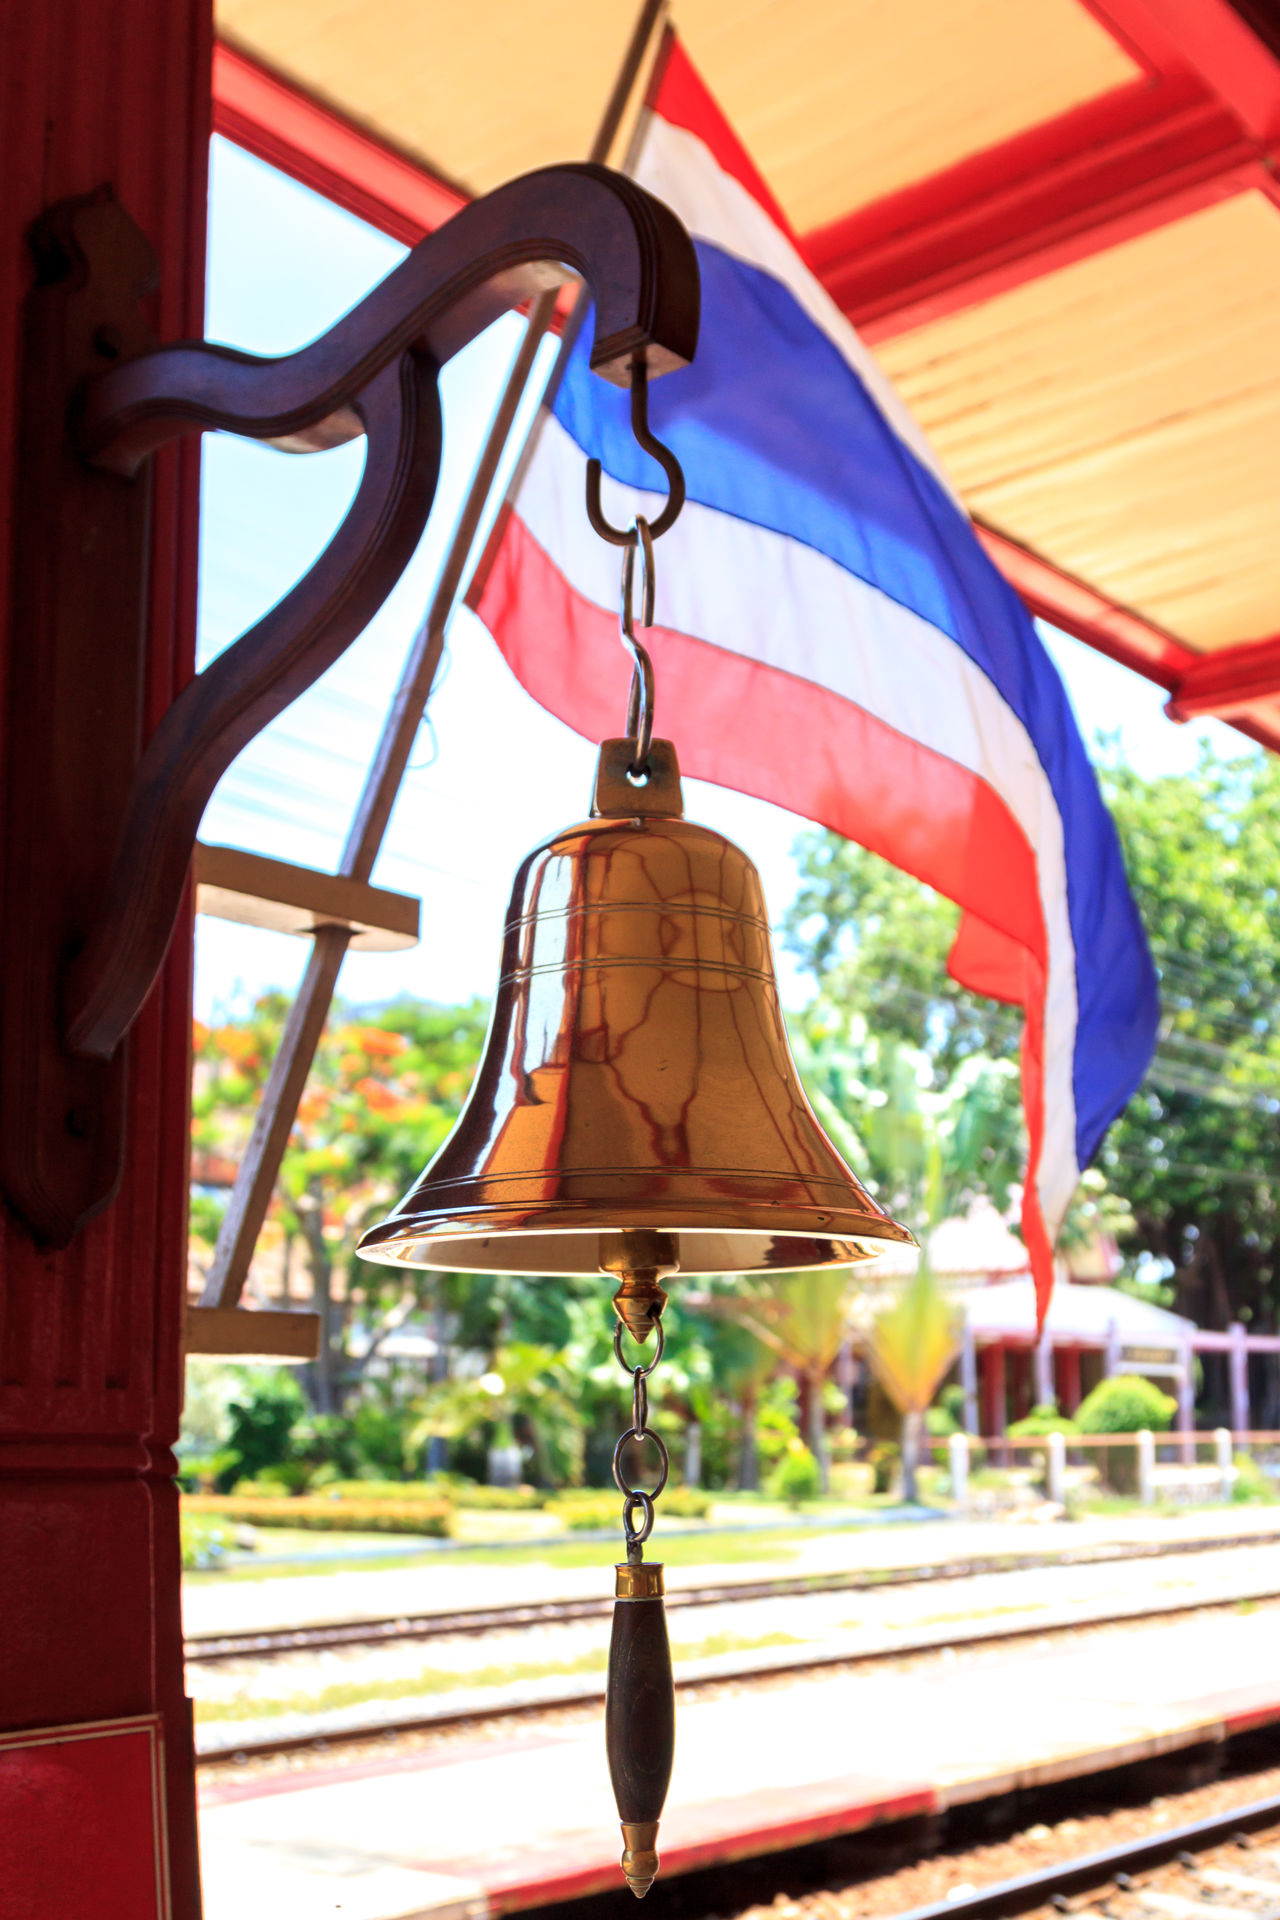 Hua Hin train station's bell and Thai flag Arrival Bell Built Structure City City Life Close-up Commuter Country Countryside Day Focus On Foreground Hanging Journey Railway Station Railway Station Platform Ring Station Thai Culture Thai Flag Thailand Train Station Travel